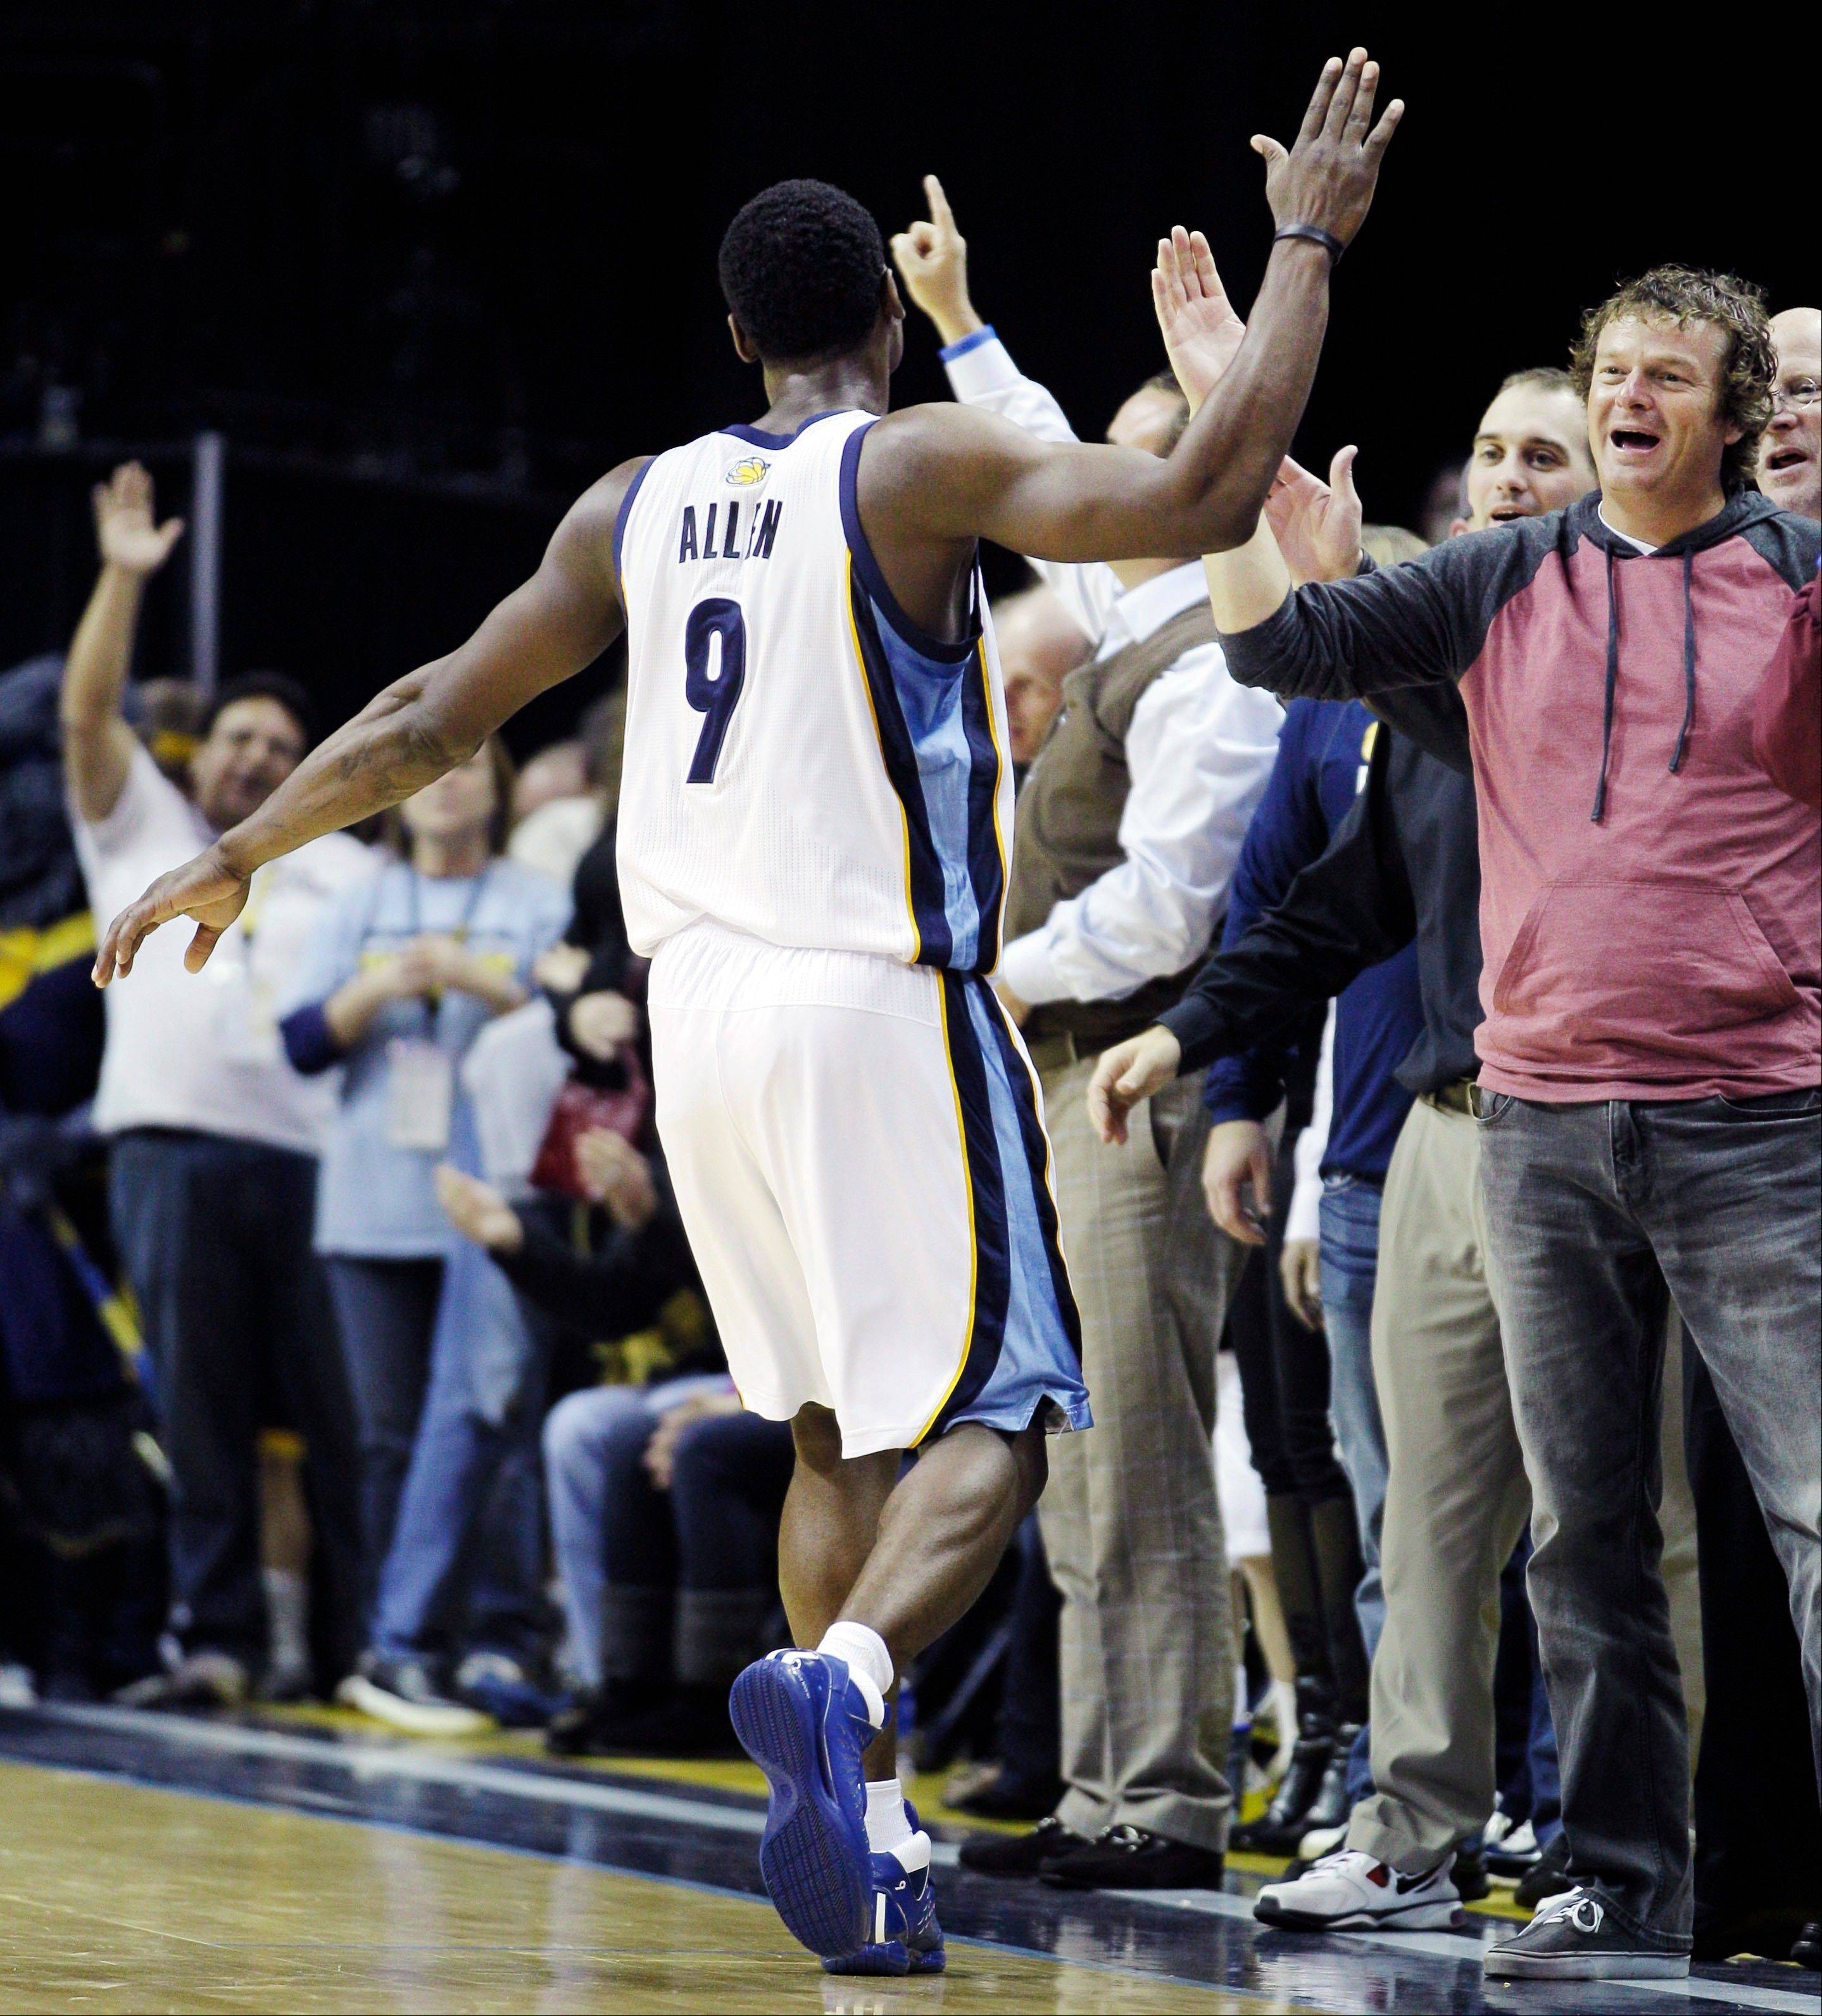 Memphis Grizzlies fans cheer and greet Memphis Grizzlies� Tony Allen during a timeout late in the second half of an NBA basketball game against the Cleveland Cavaliers in Memphis, Tenn, Monday, Nov. 26, 2012. The Grizzlies won 84-78.